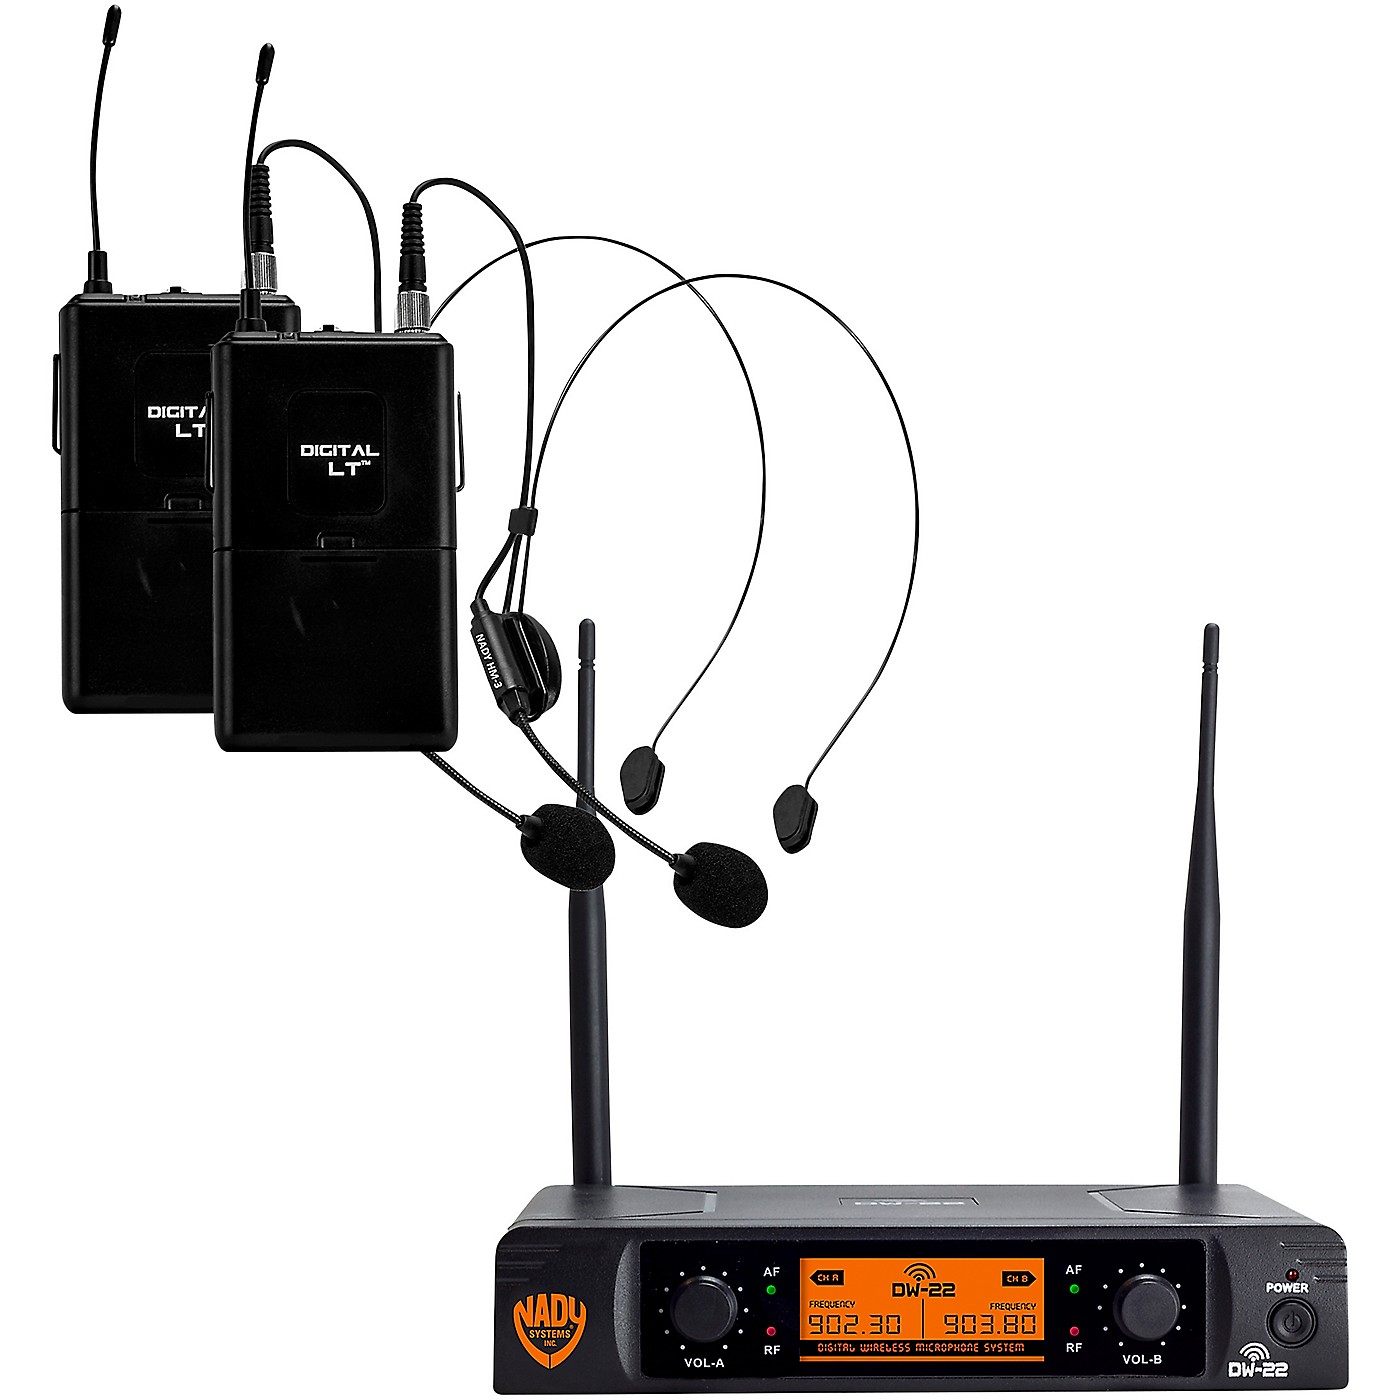 Nady DW-22 LT 24 bit Digital Dual Headmic Wireless Microphone System thumbnail